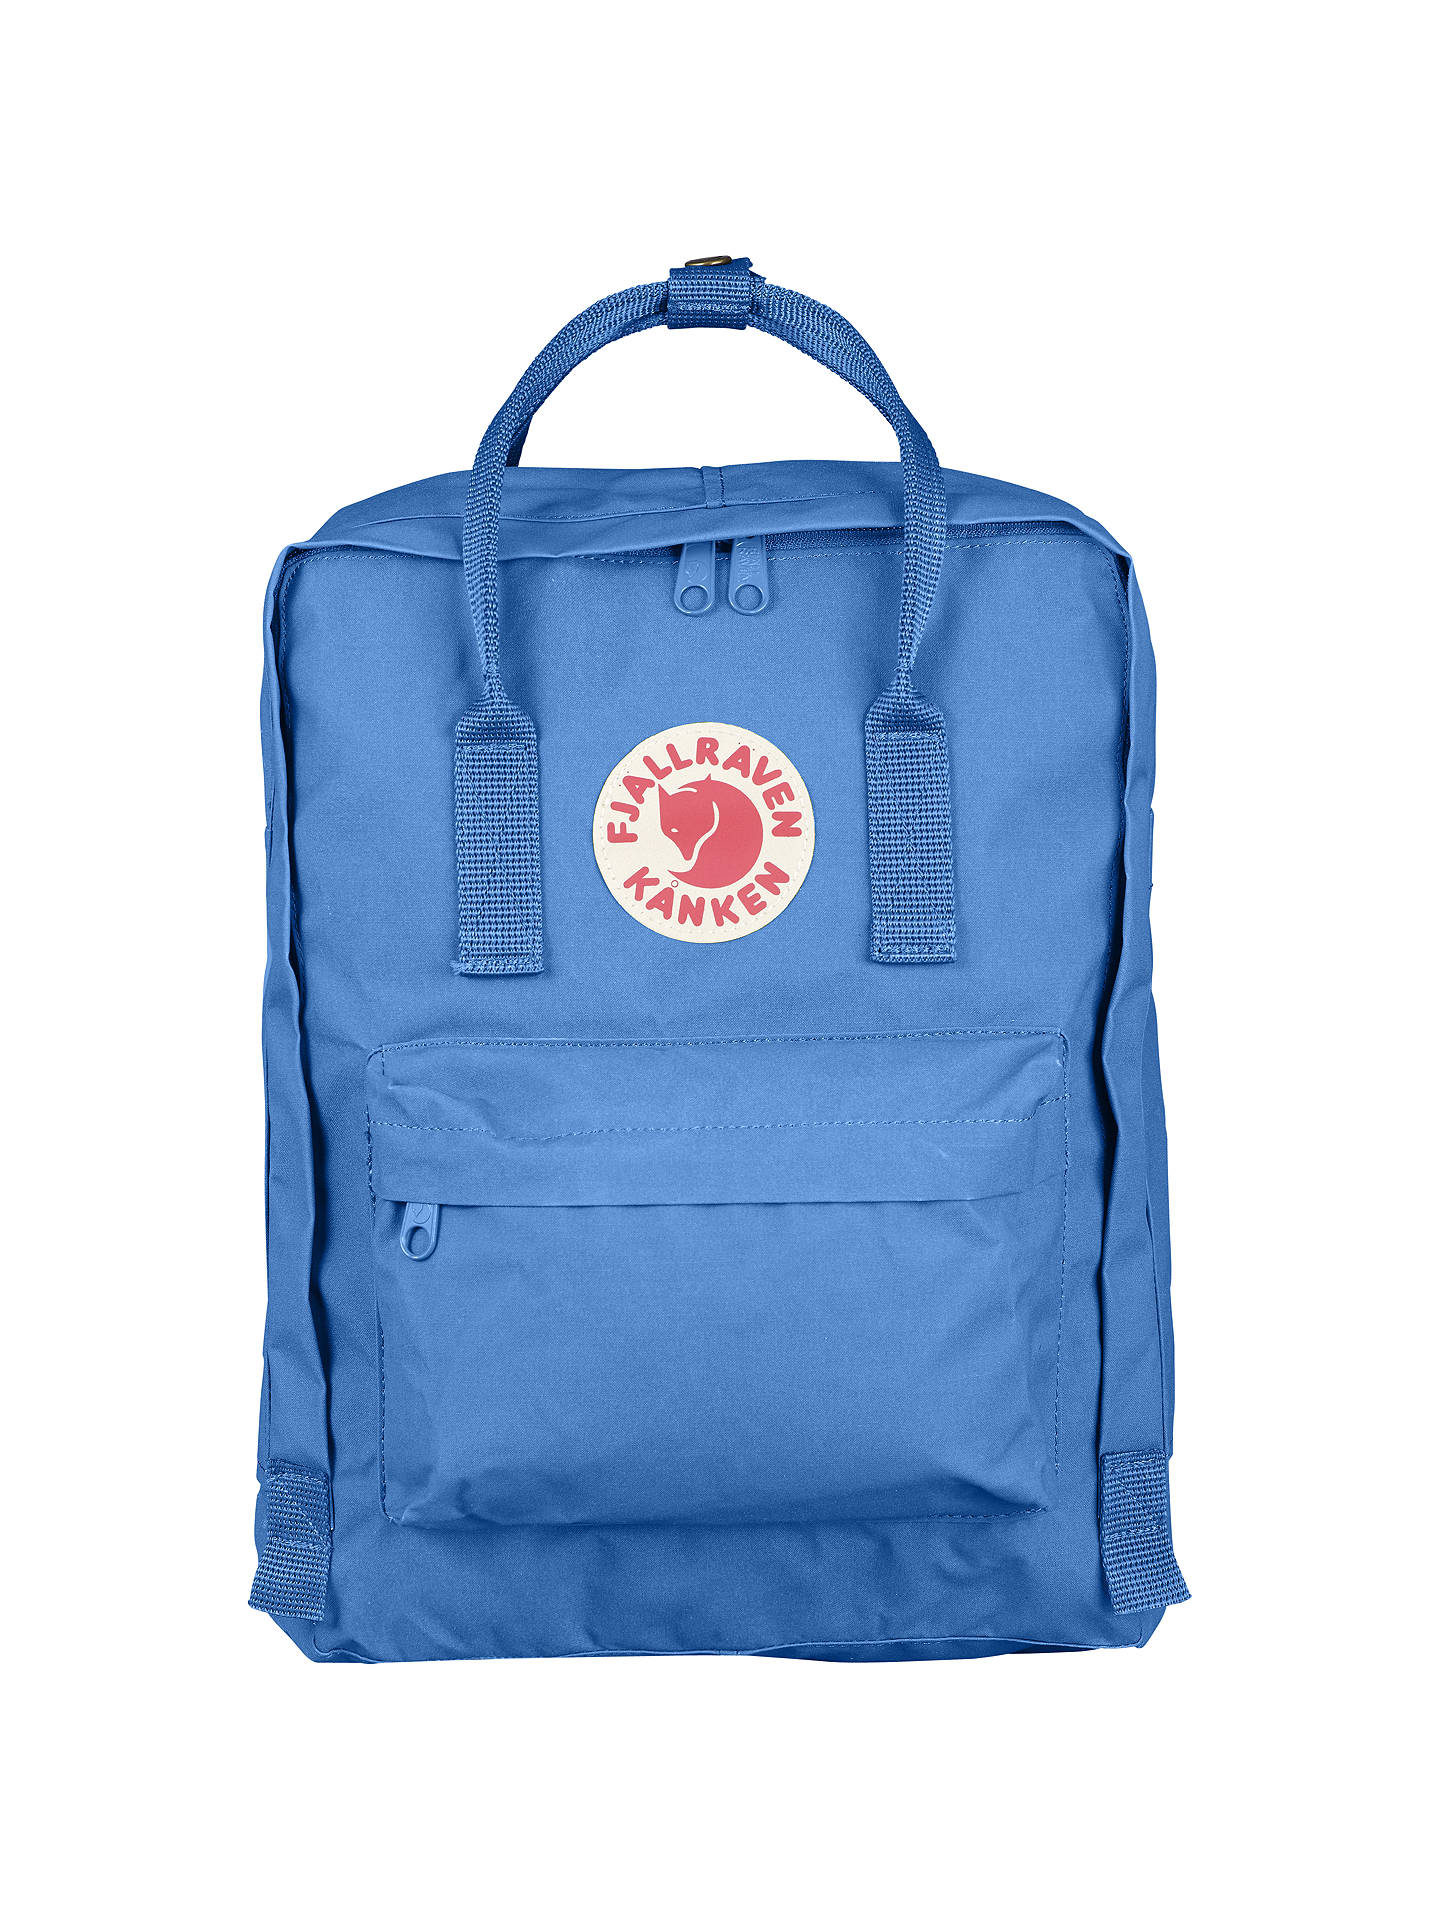 new style save off for whole family Fjällräven Kanken Classic Backpack at John Lewis & Partners